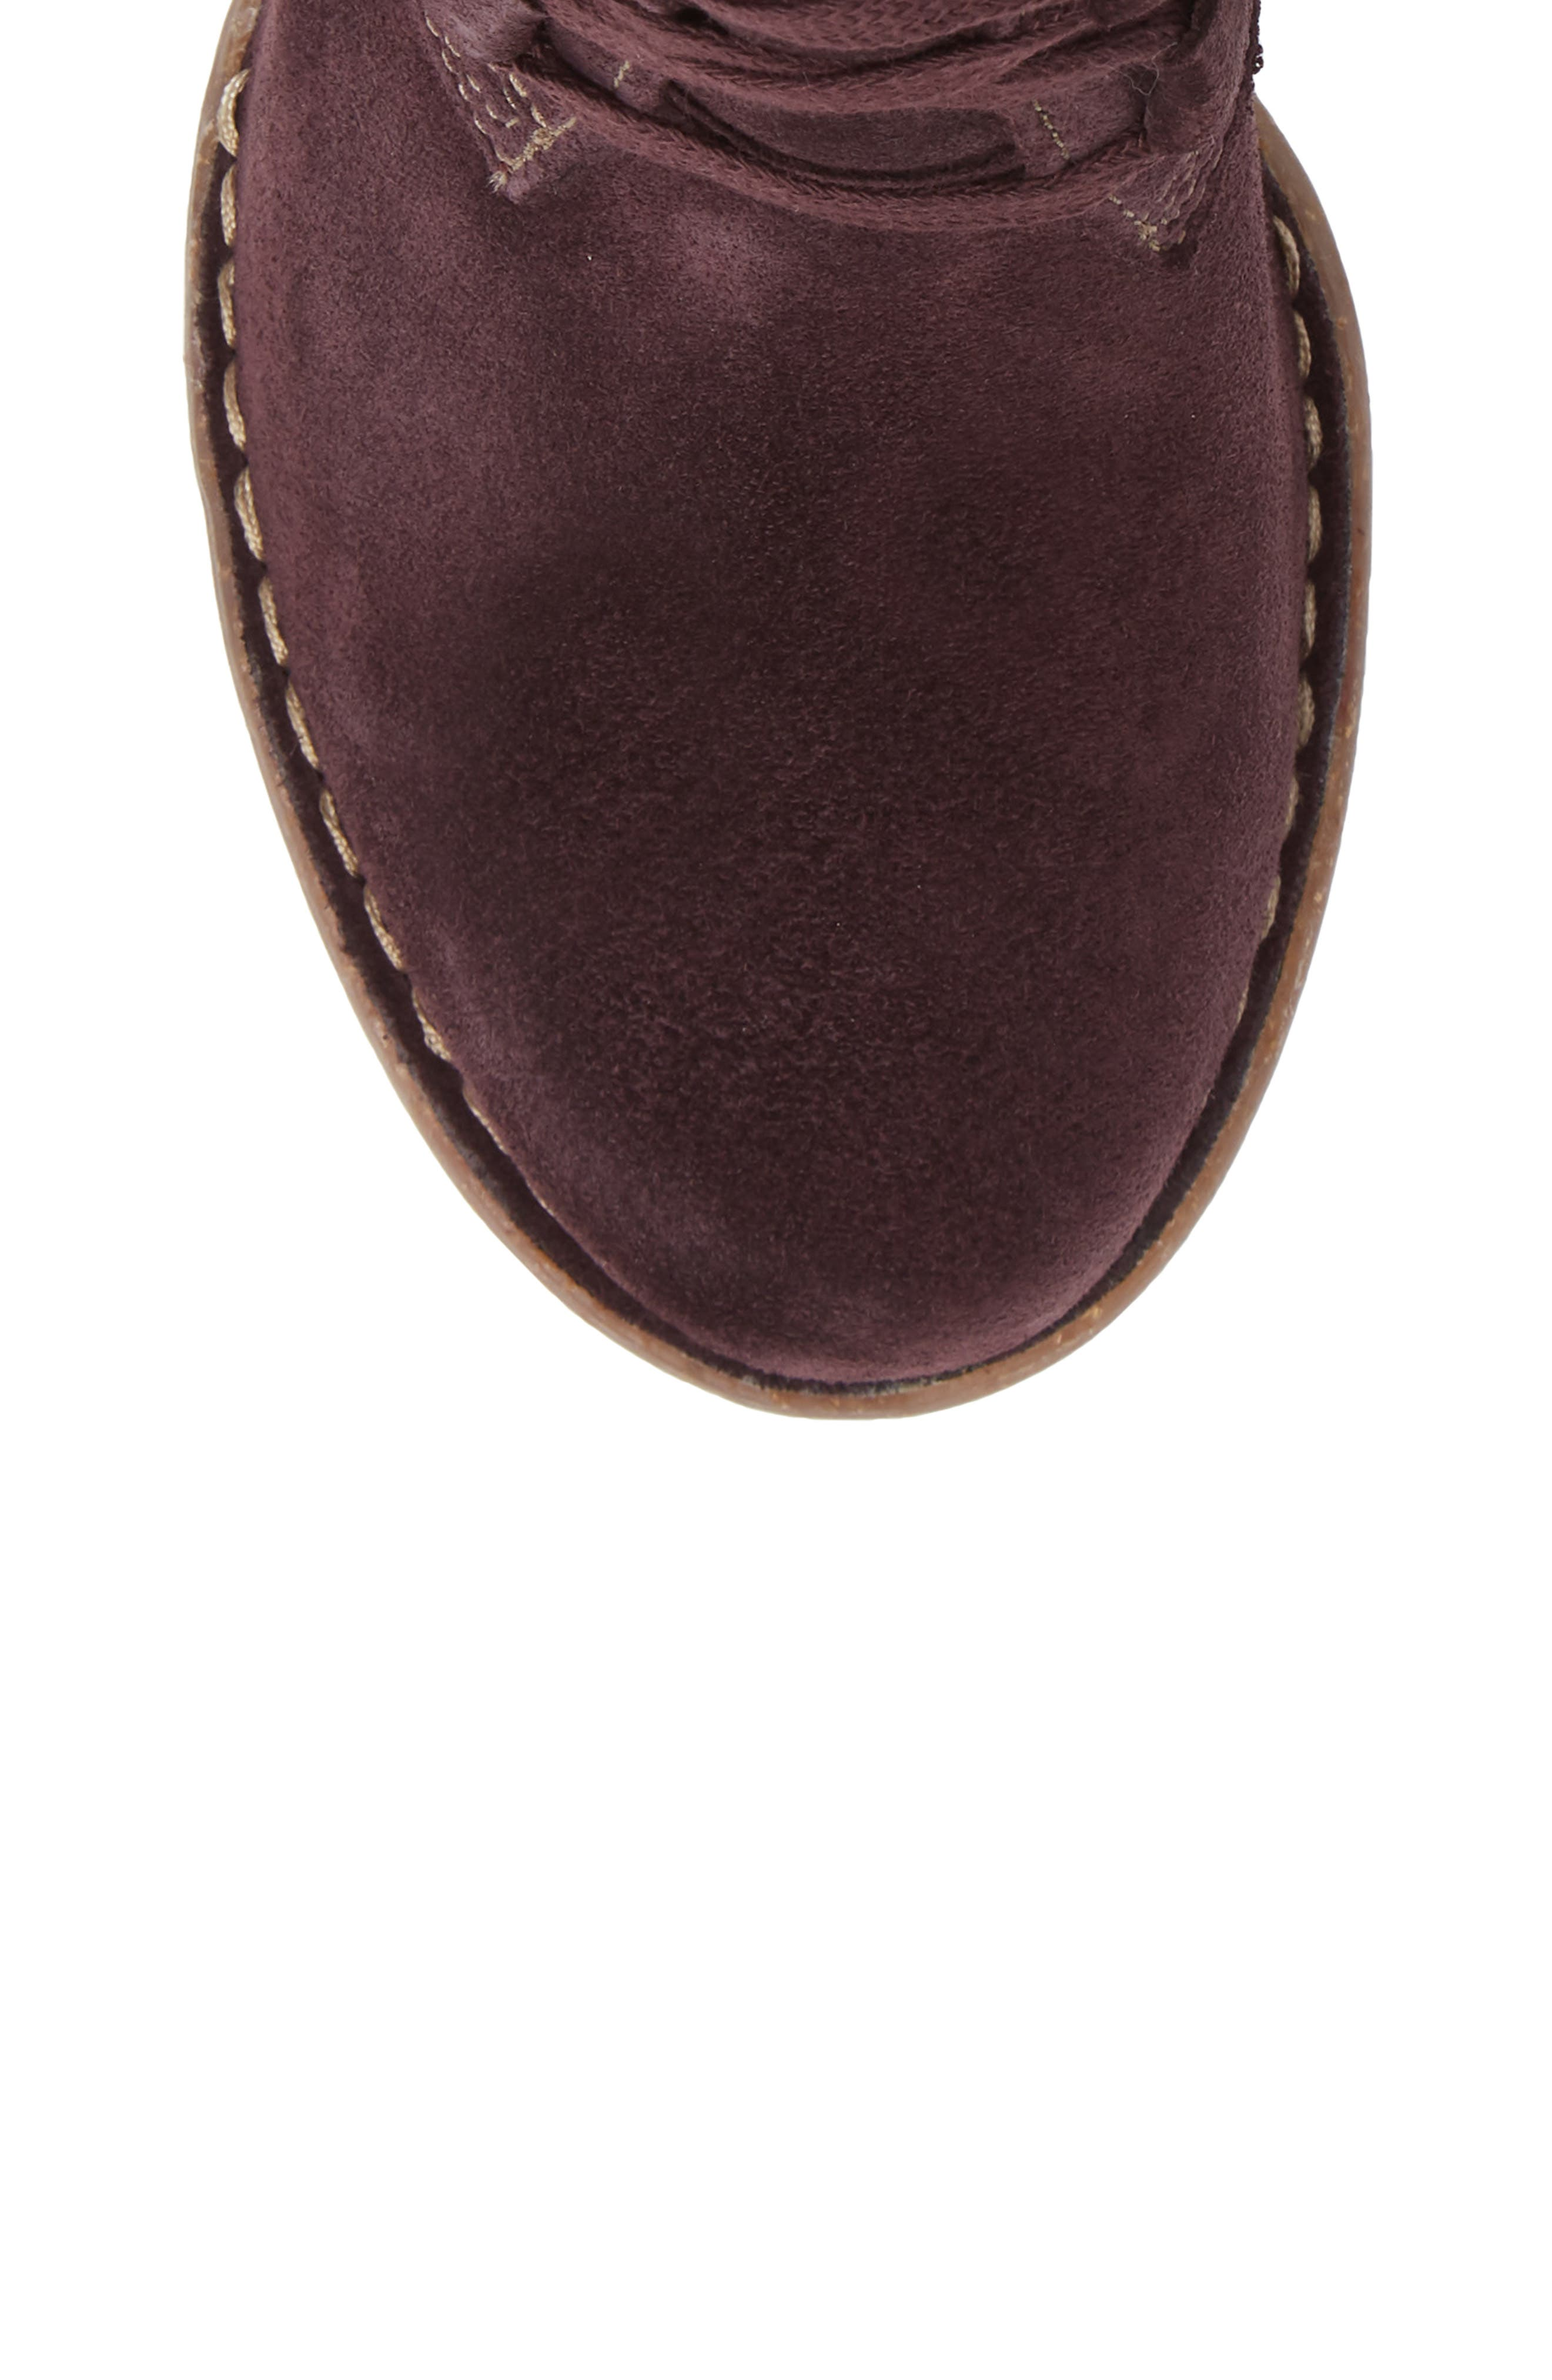 CLARKS<SUP>®</SUP>, Carleta Lyon Ankle Boot, Alternate thumbnail 5, color, AUBERGINE SUEDE